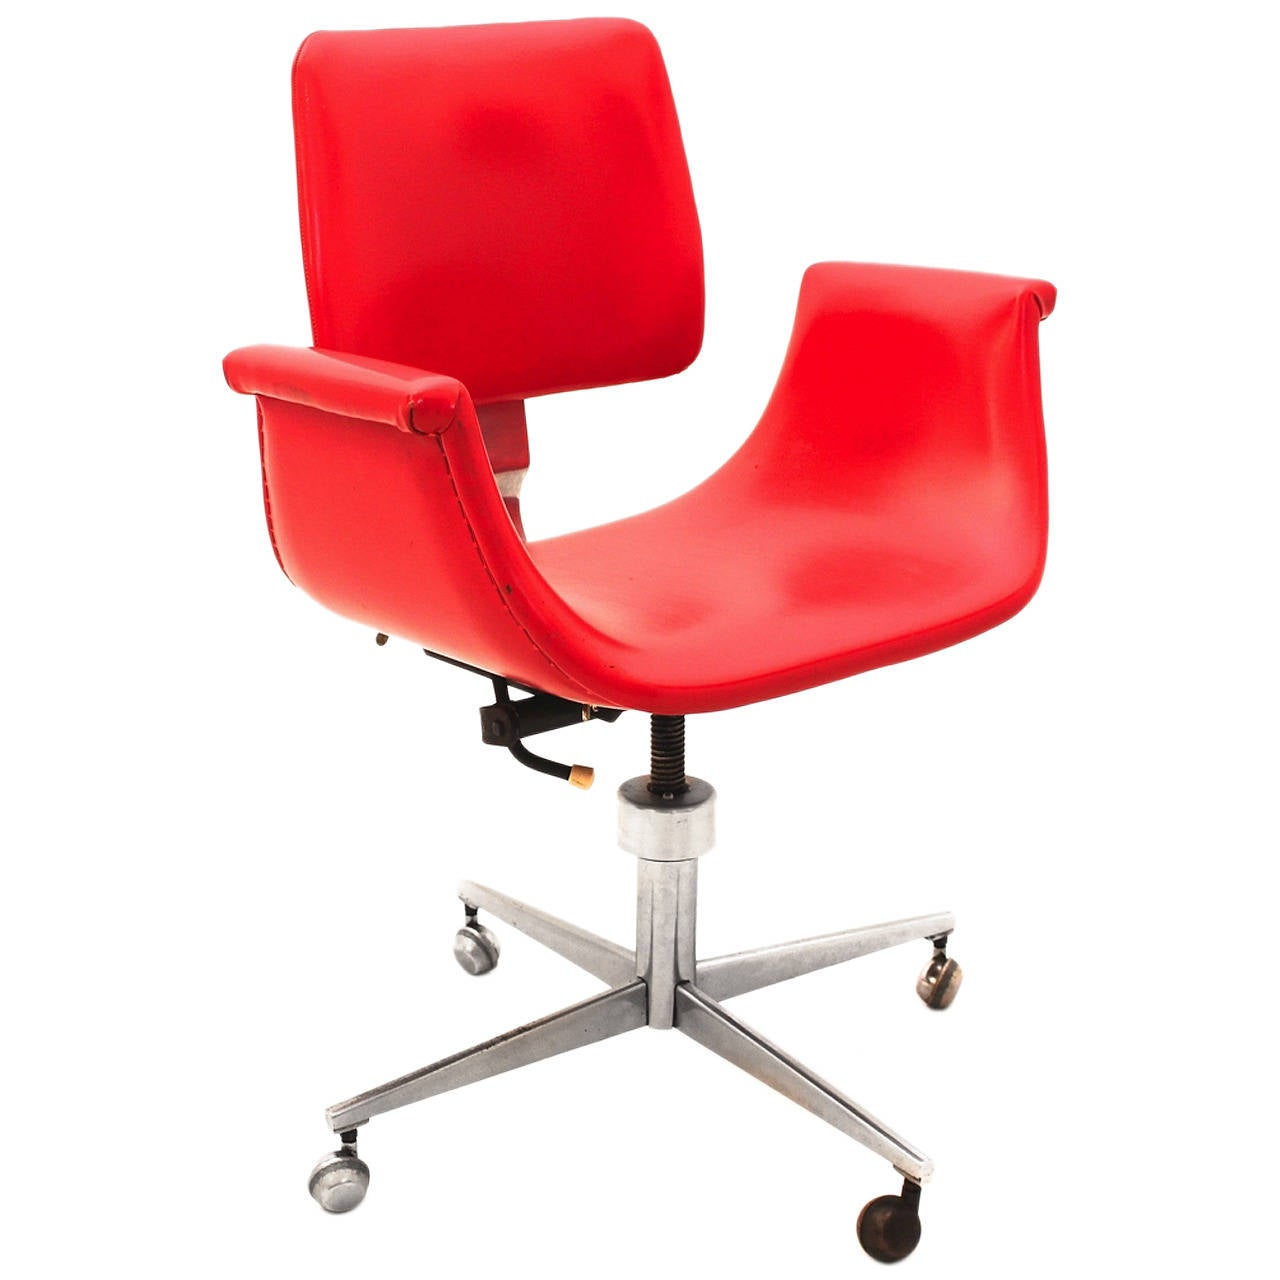 Superbe Red Mid Century Modern Swivel Desk Chair Italy 1950 For Sale